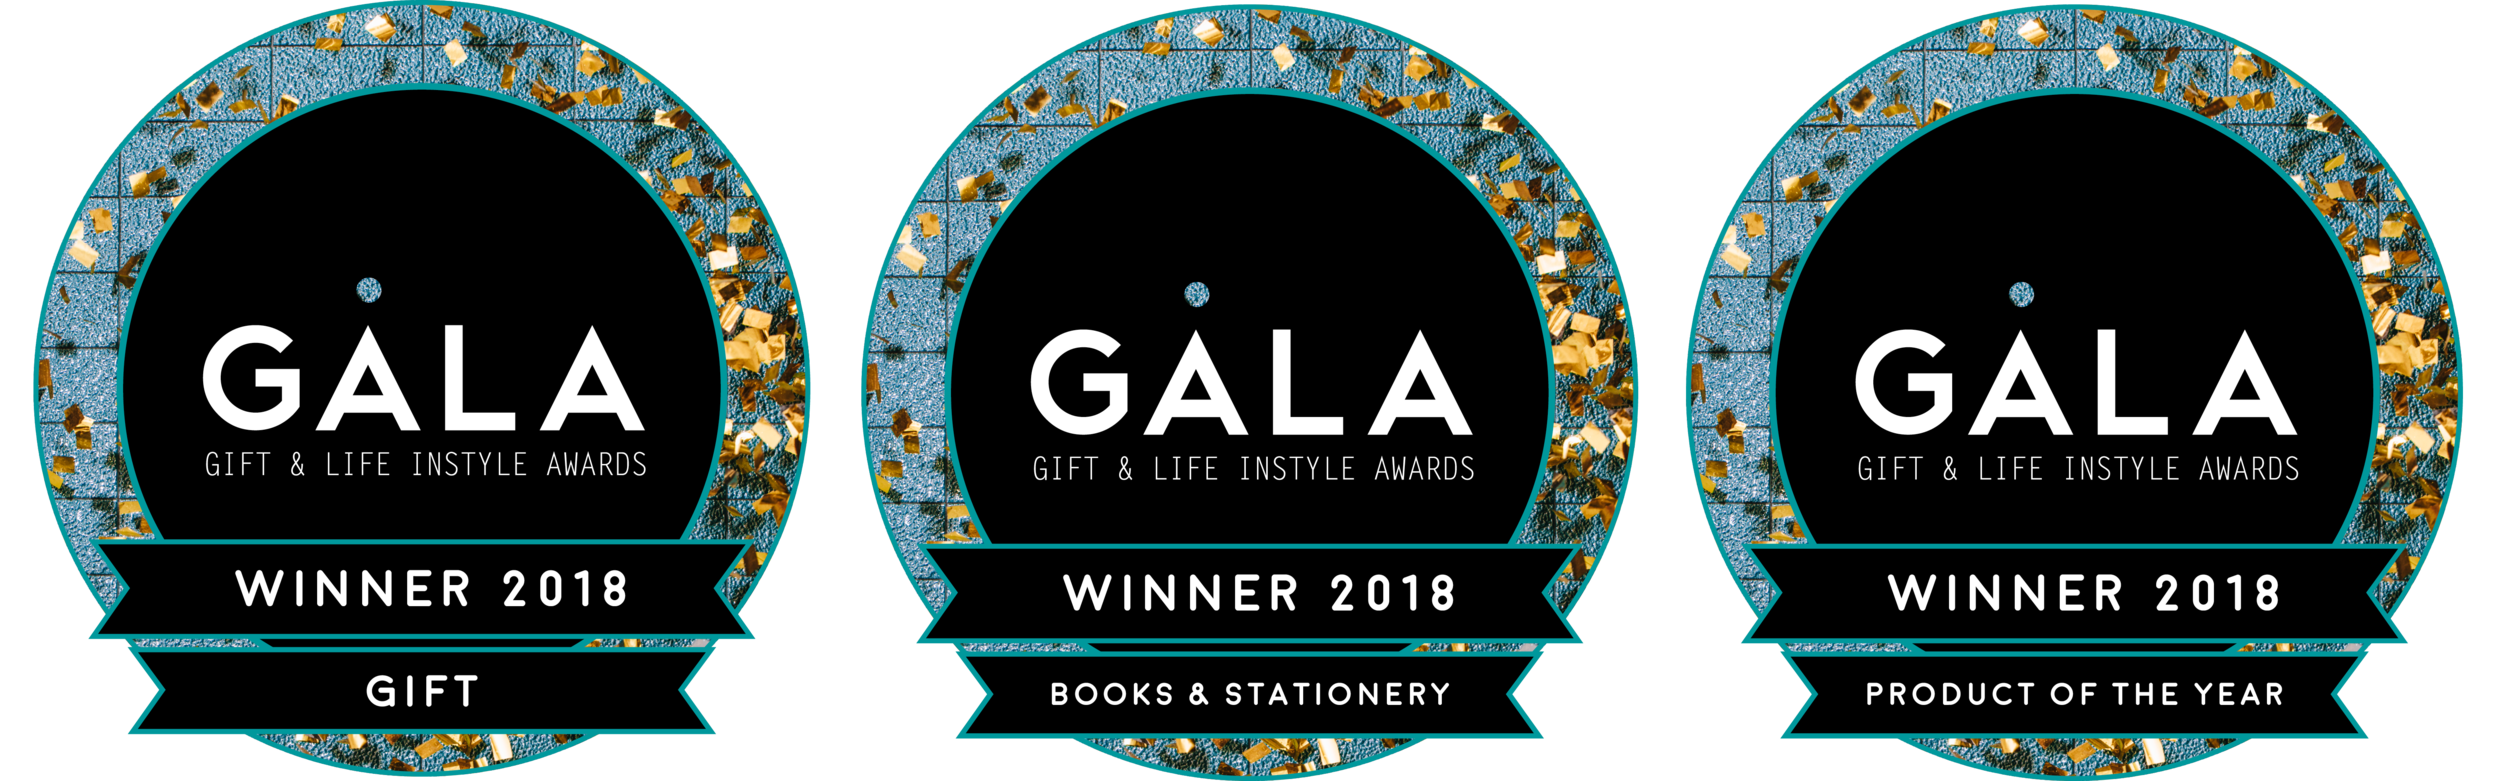 GALA18_WinnerBadge_Gift copy.png